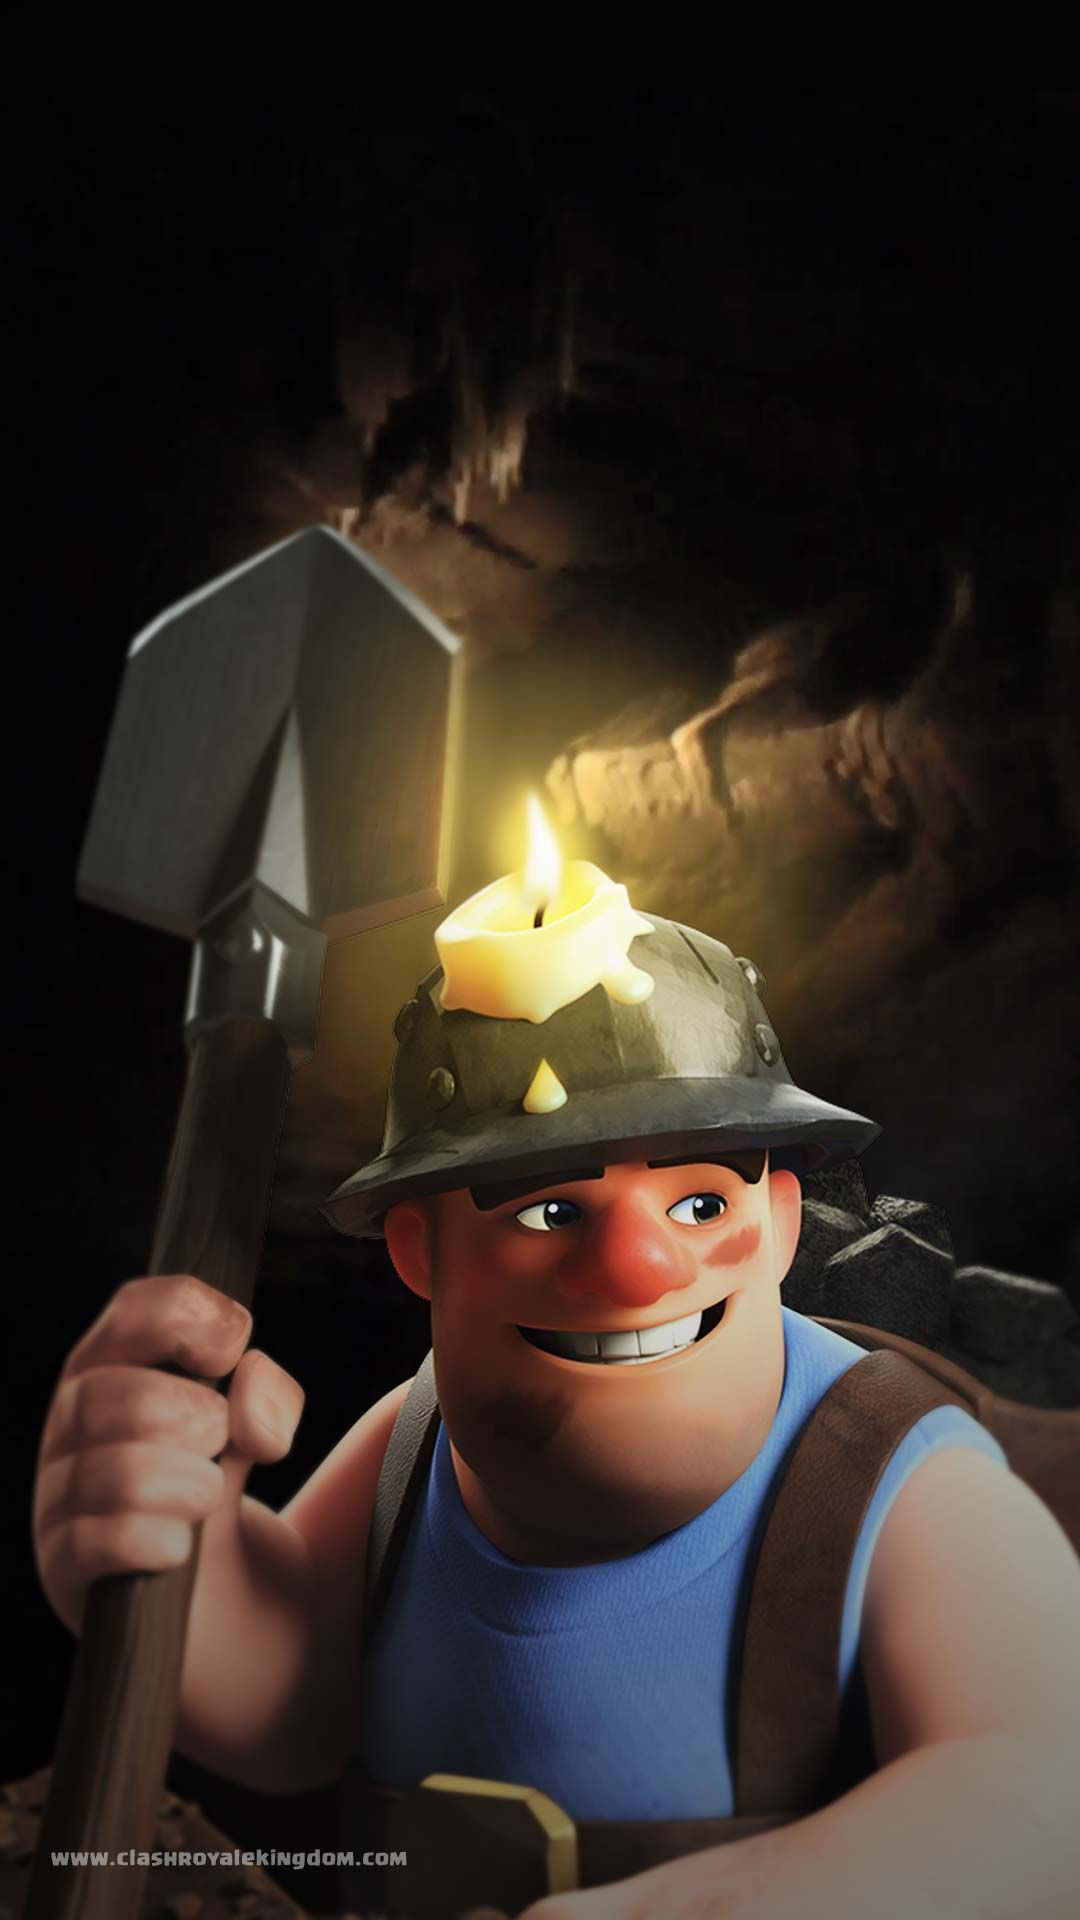 Clash Royale Wallpaper Miner Supercell Clash Royale Clash Of